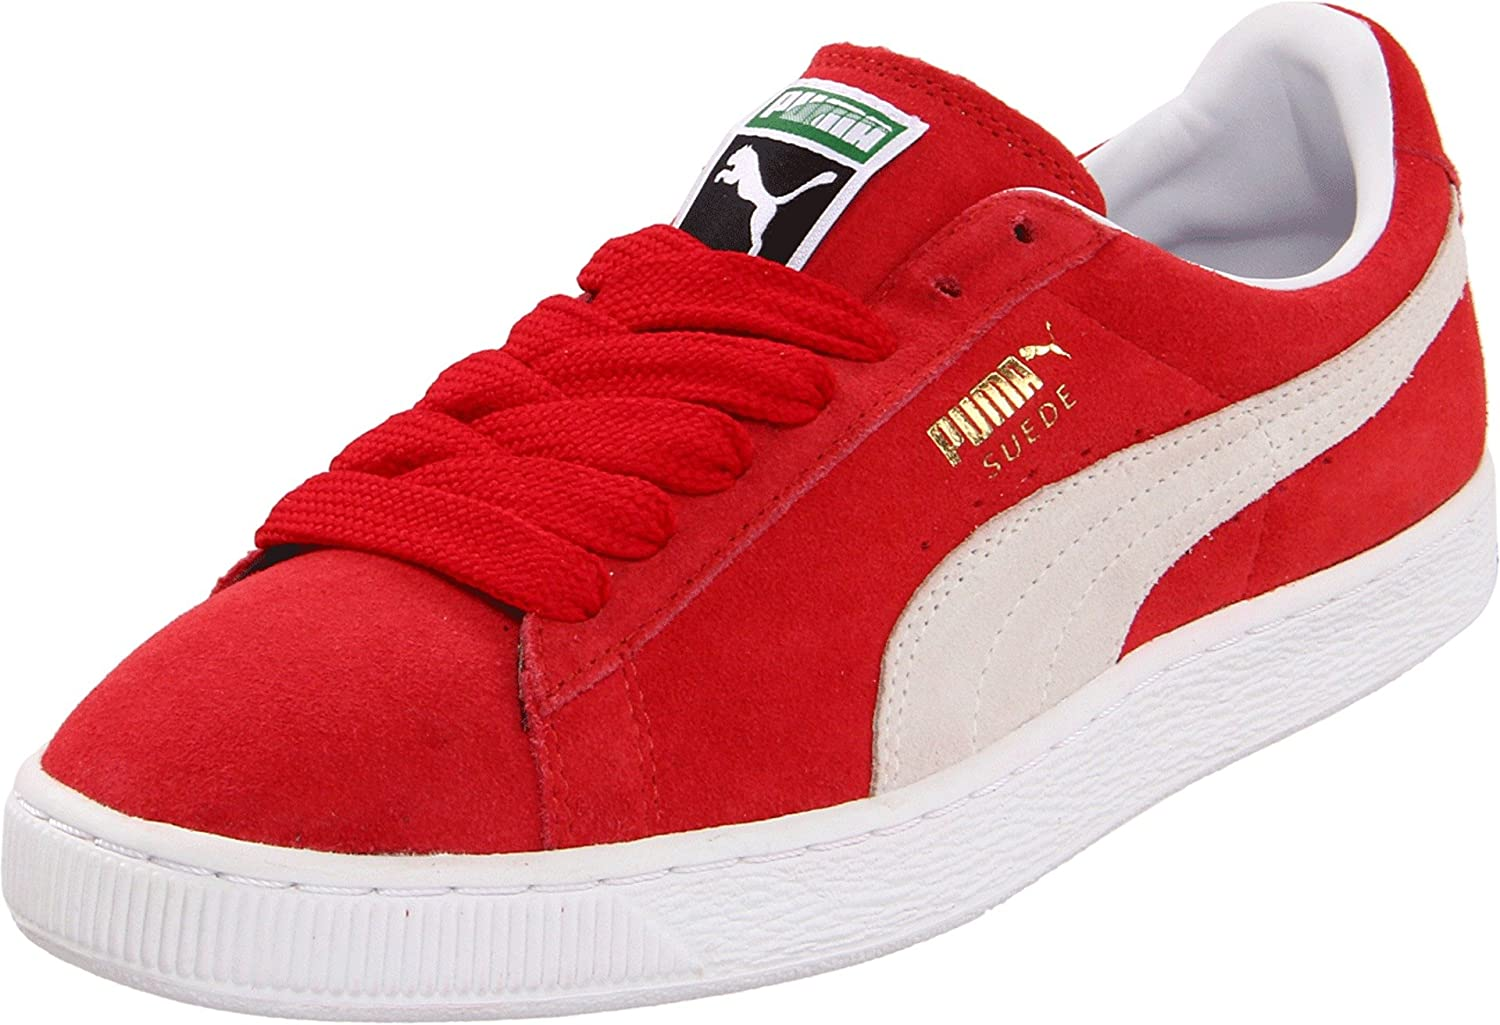 60175d425ad8a Puma Men's Suede Classic+ Leather Sneakers: Buy Online at Low Prices in  India - Amazon.in